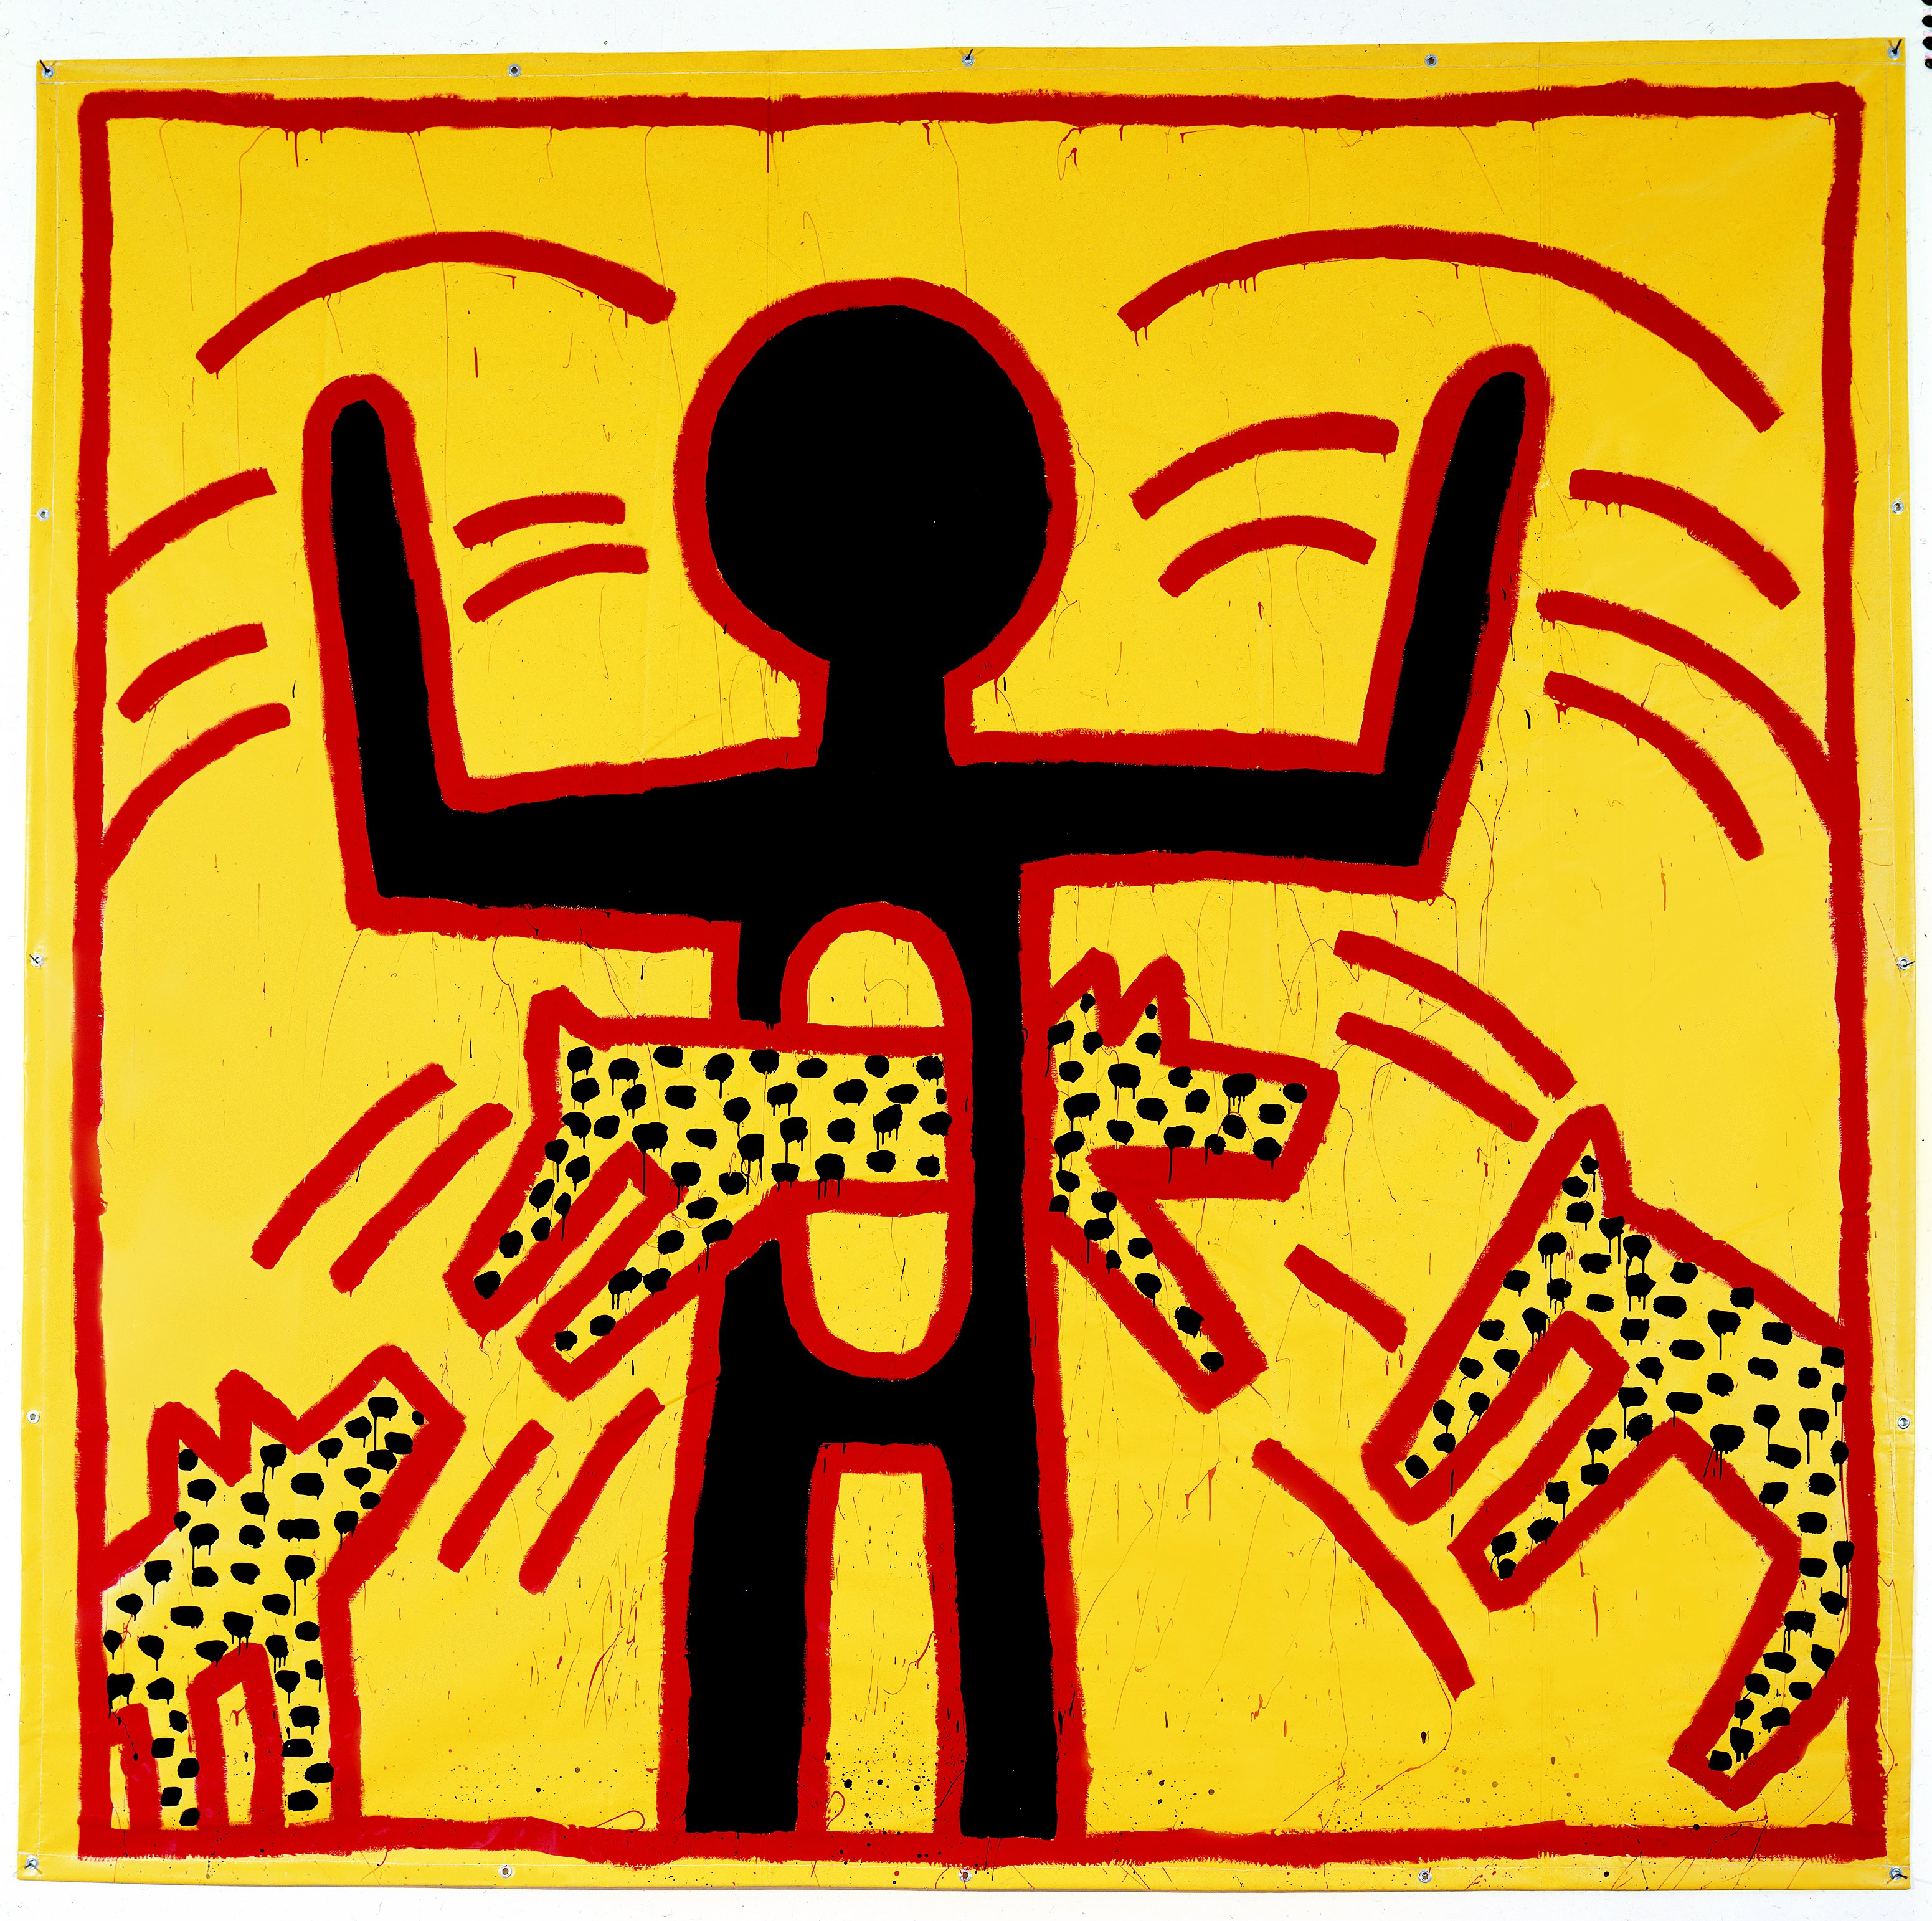 01_Keith Haring_Untitled_1982©Keith Haring Foundation.jpg